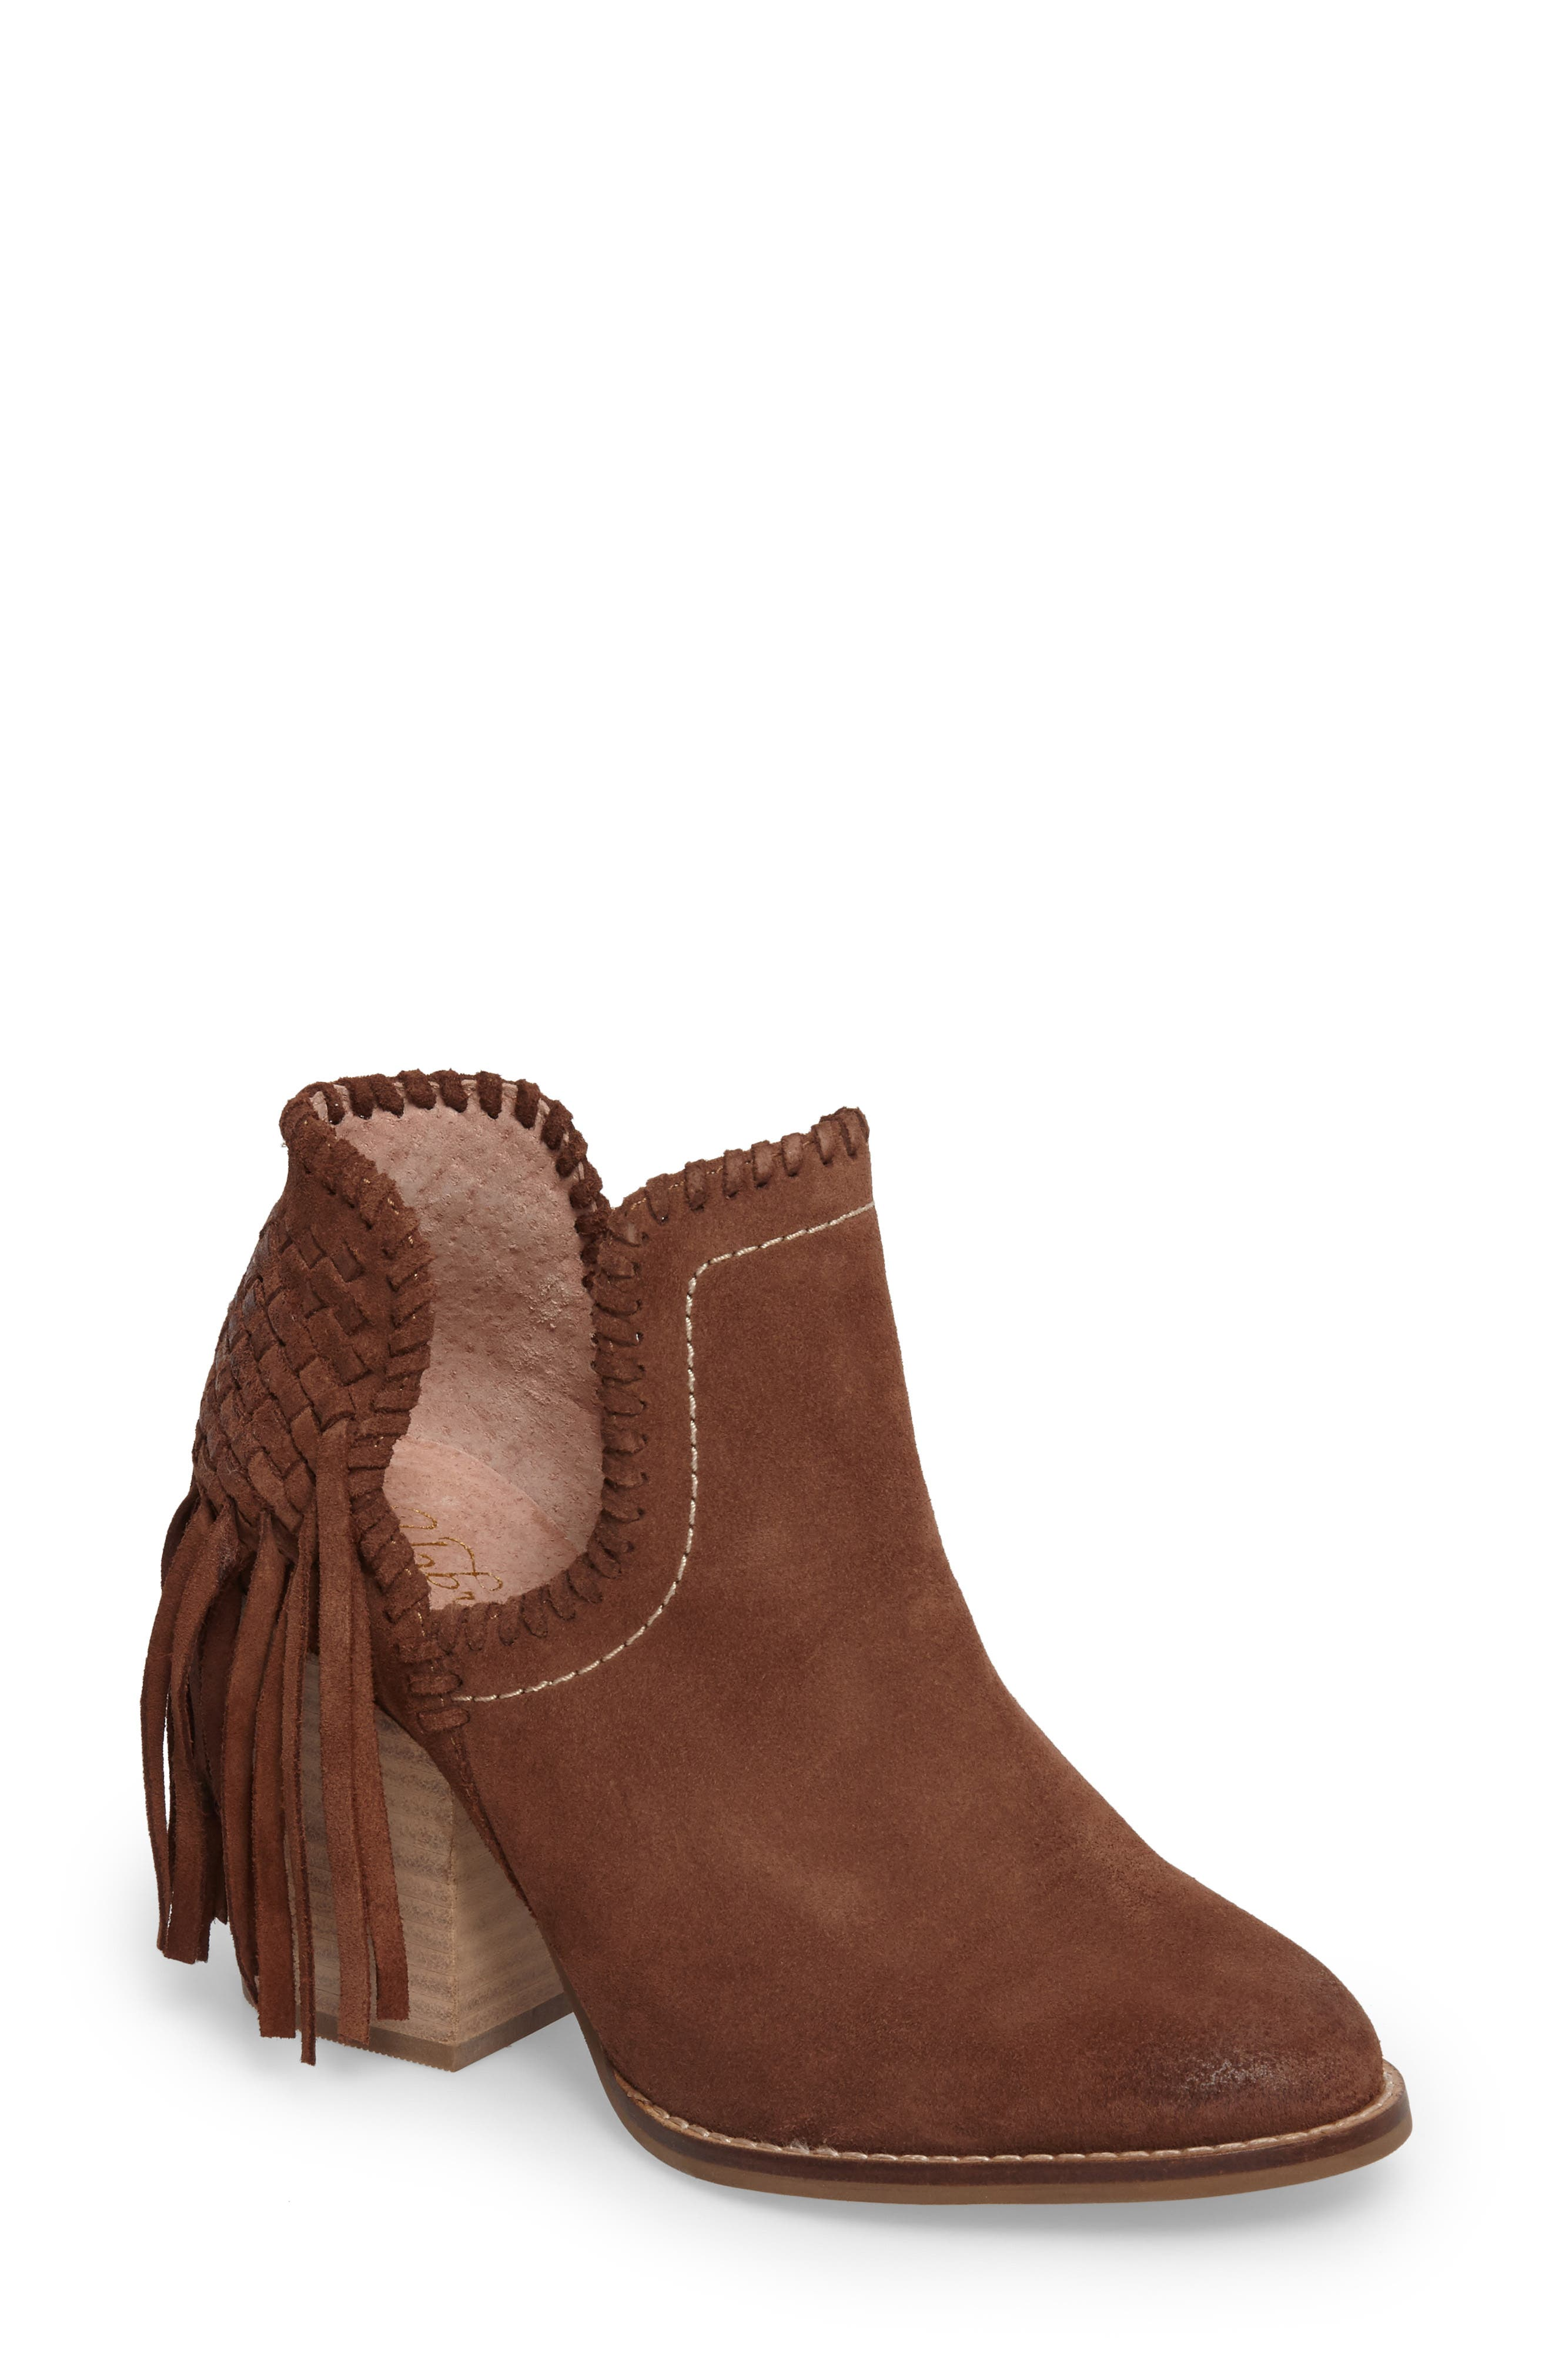 Unbridled Lily Bootie,                         Main,                         color, 200